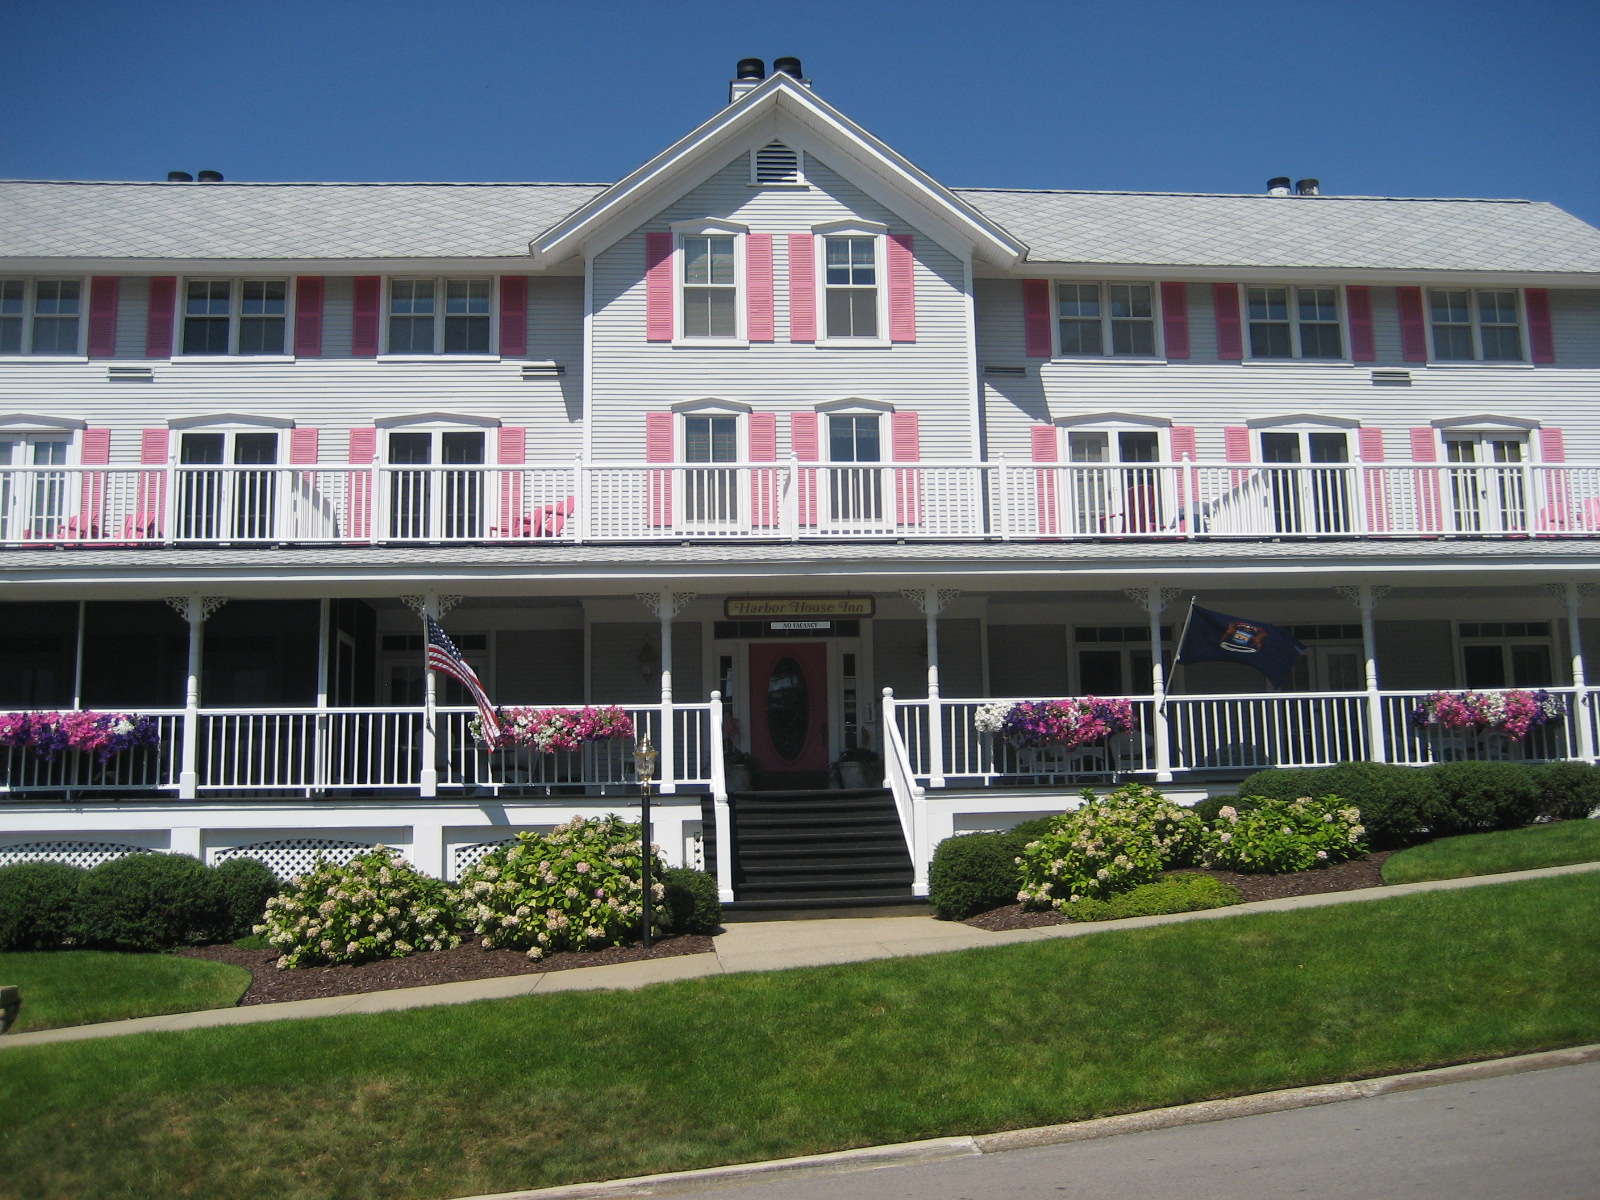 The Harbor House Inn